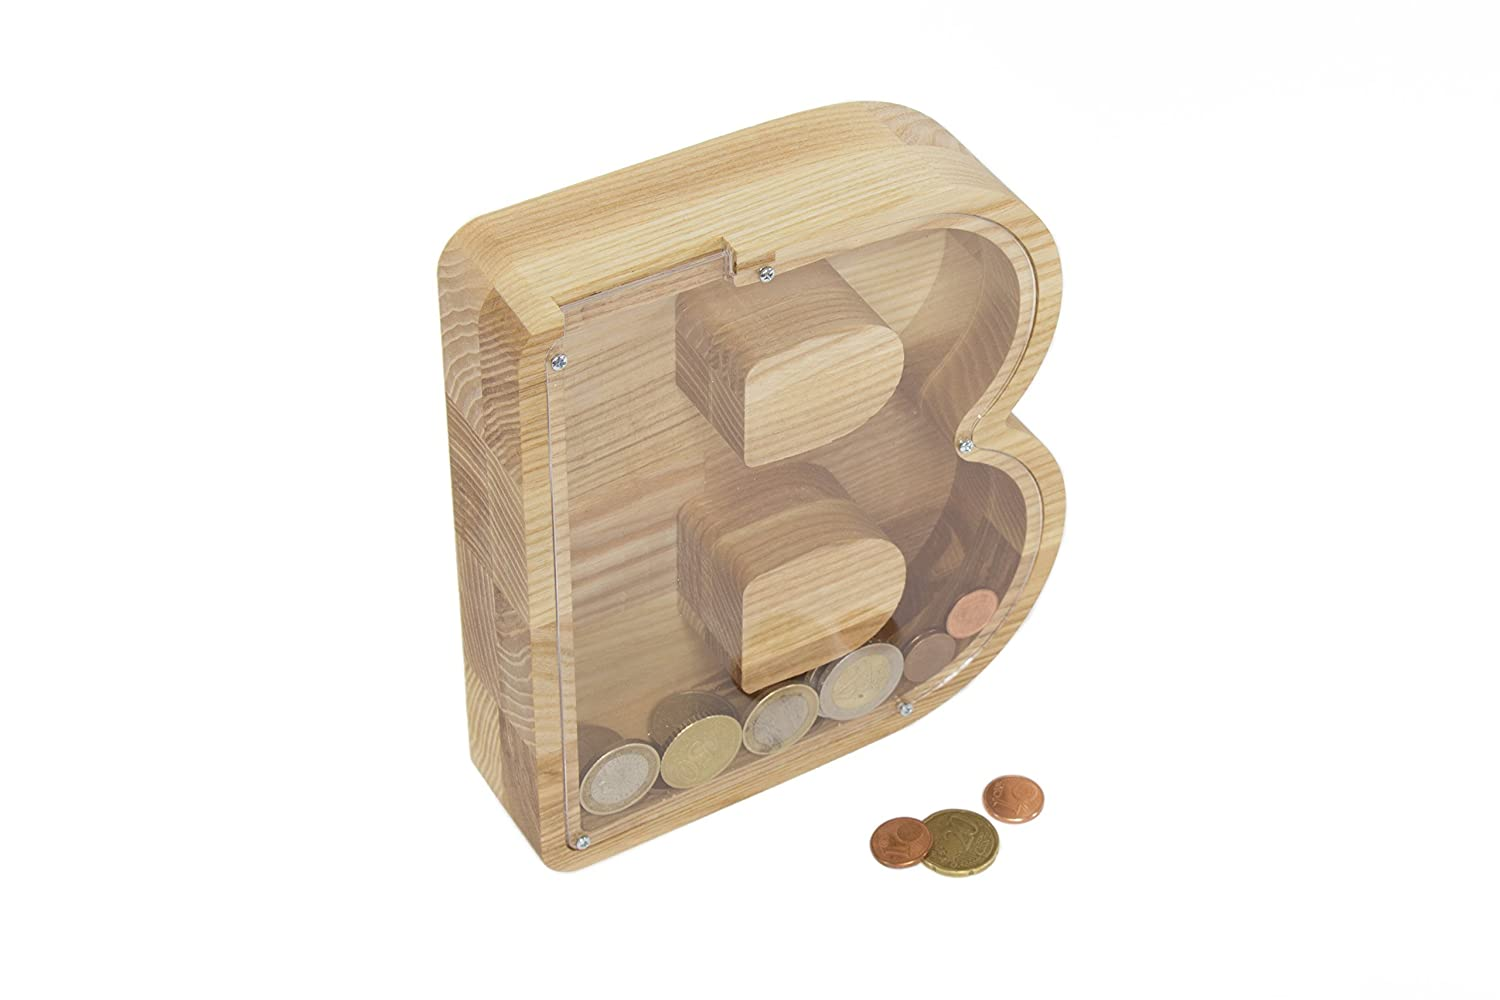 B Letter Money Box 6.2x7x1.6 inches - Child Money Box - Wooden Money Box - Wooden Money Bank - Baby Piggy Bank - Kids Piggy Bank - Baby Birth Gift